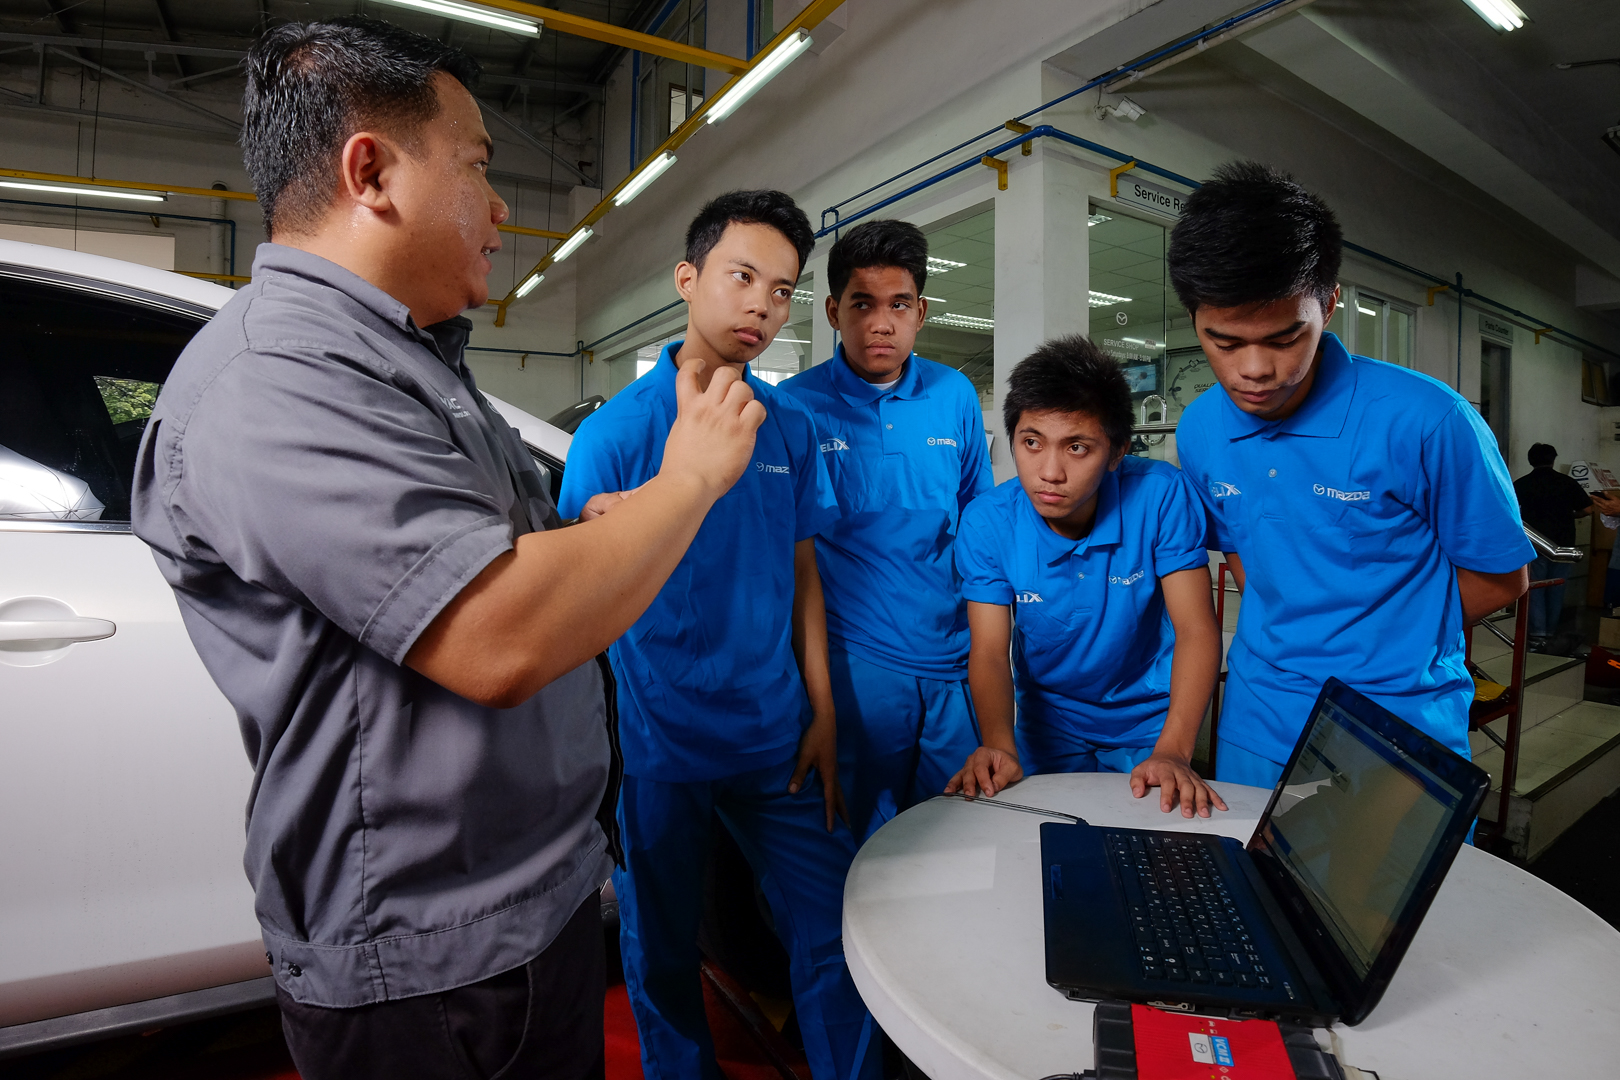 Mazda Philippines continues its 8th Year of Partnership with MFI Polytechnic Institute to Educate Underprivileged Youth